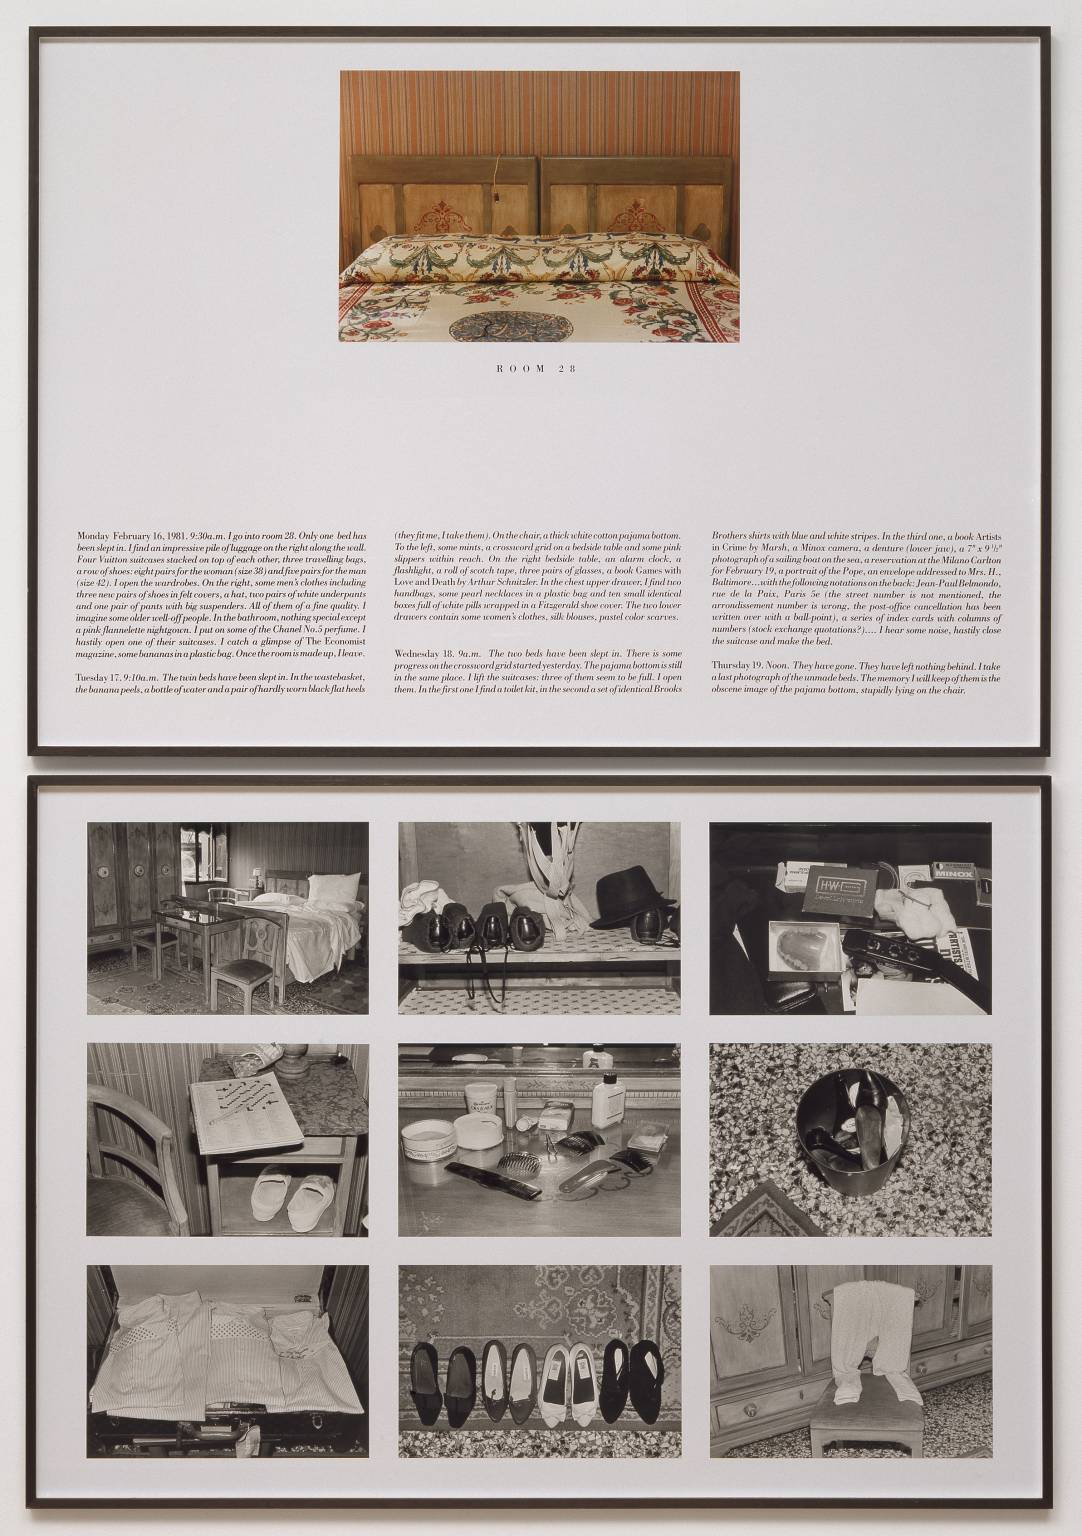 The Hotel, Room 28 1981 by Sophie Calle born 1953